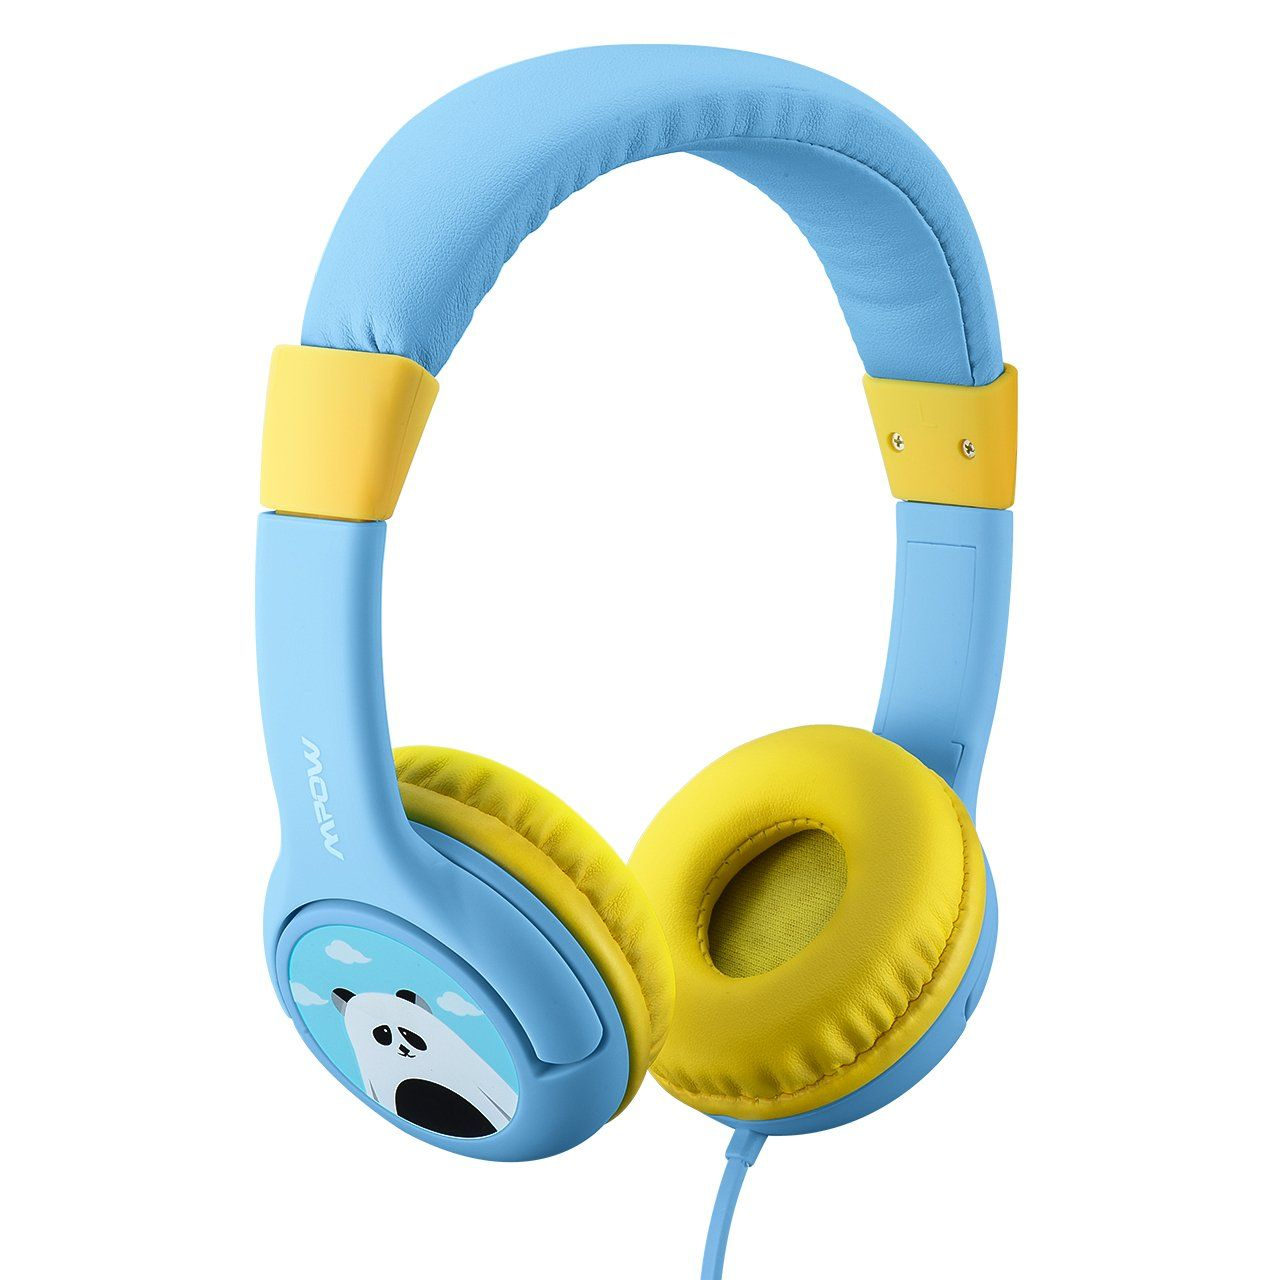 22291d9f95a Mpow Kids Headphones Wired OnEar Headphones with Music Sharing Function 85dB  Volume Limited Hearing Protection Safe